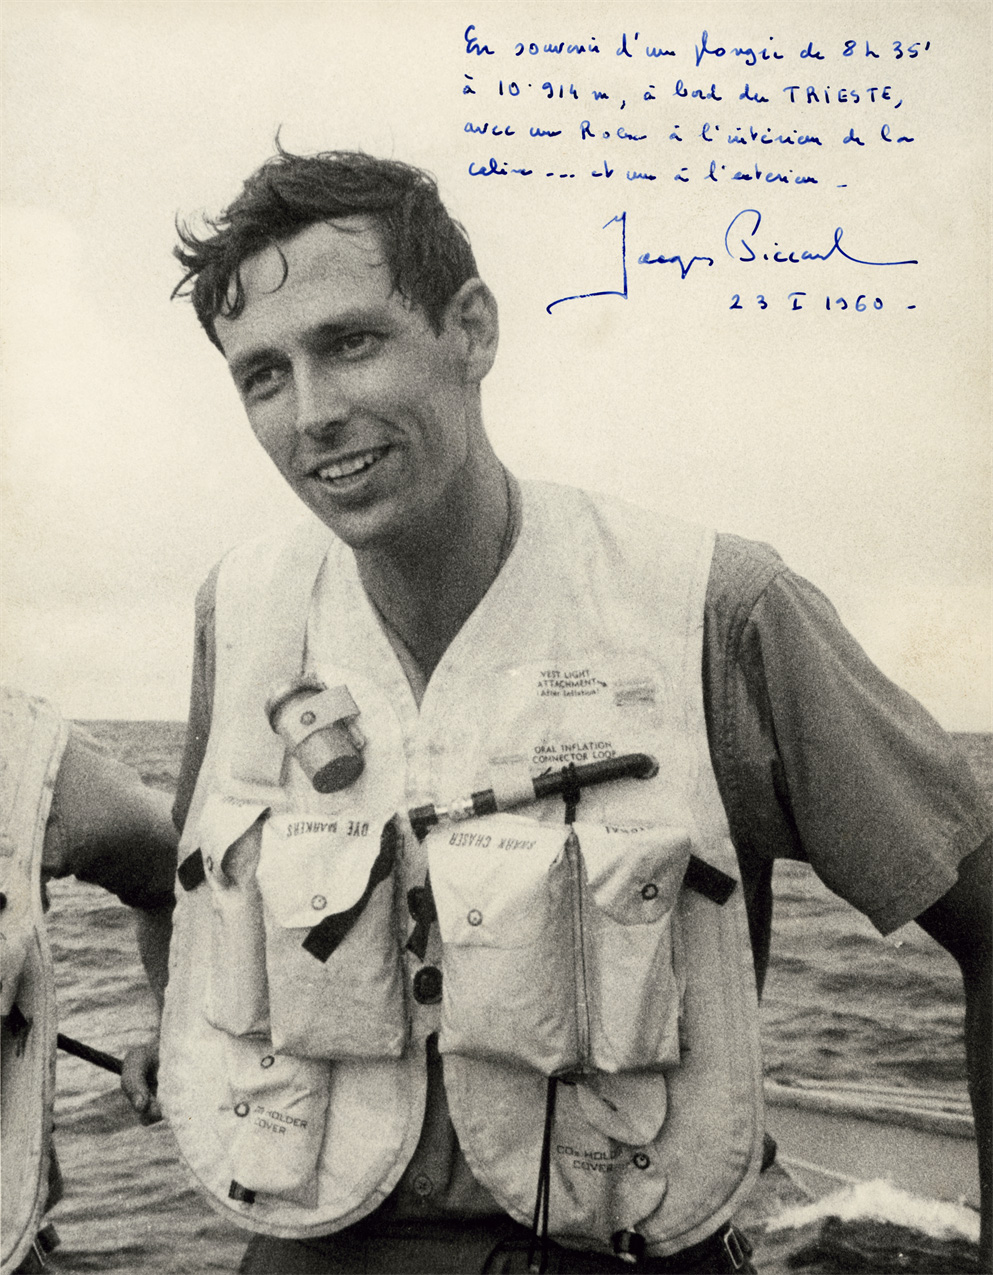 Swiss oceanographer and enginee Mr Jacques Piccard (1922-2008)